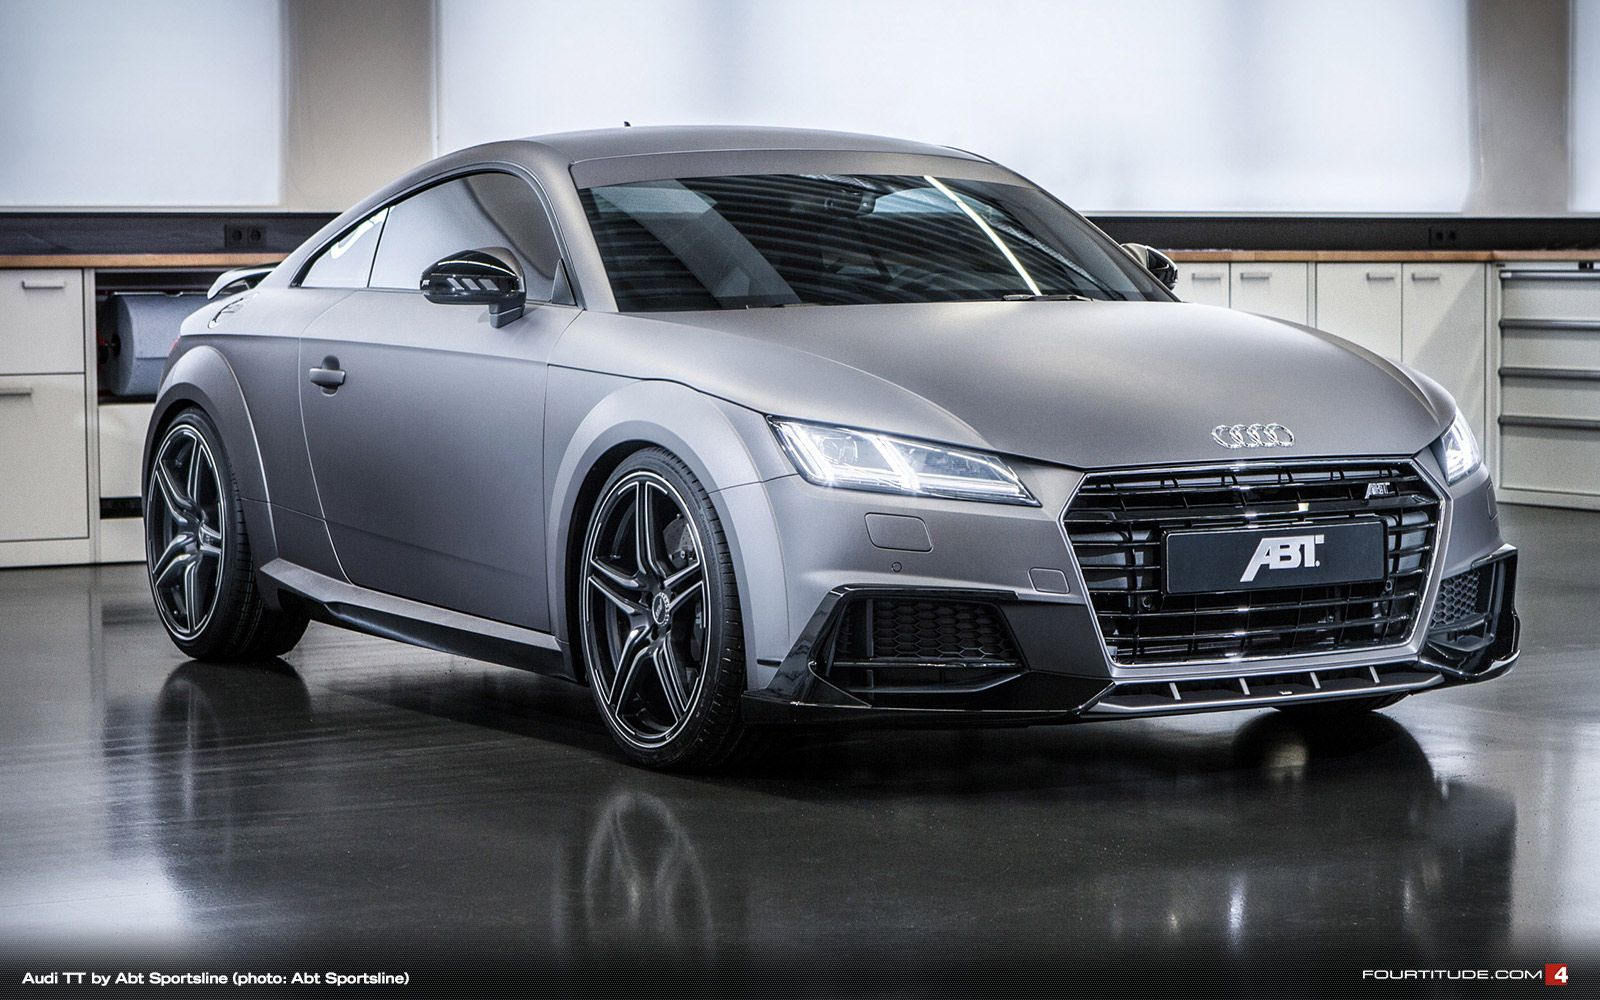 """The matt wrap in """"gunmetal"""" makes the new Audi TT come into its own. Combined with the body parts by ABT Sportsline the sport coupé from Ingolstadt becomes as assertive as it becomes a super sports car. """"And this means there has to be power and performance,"""" says CEO Hans-Jürgen Abt: """"With this exhibition model we show how much potential there is even in the 2.0 TFSI quattro, which we have upgraded to the level of the production TTS."""""""